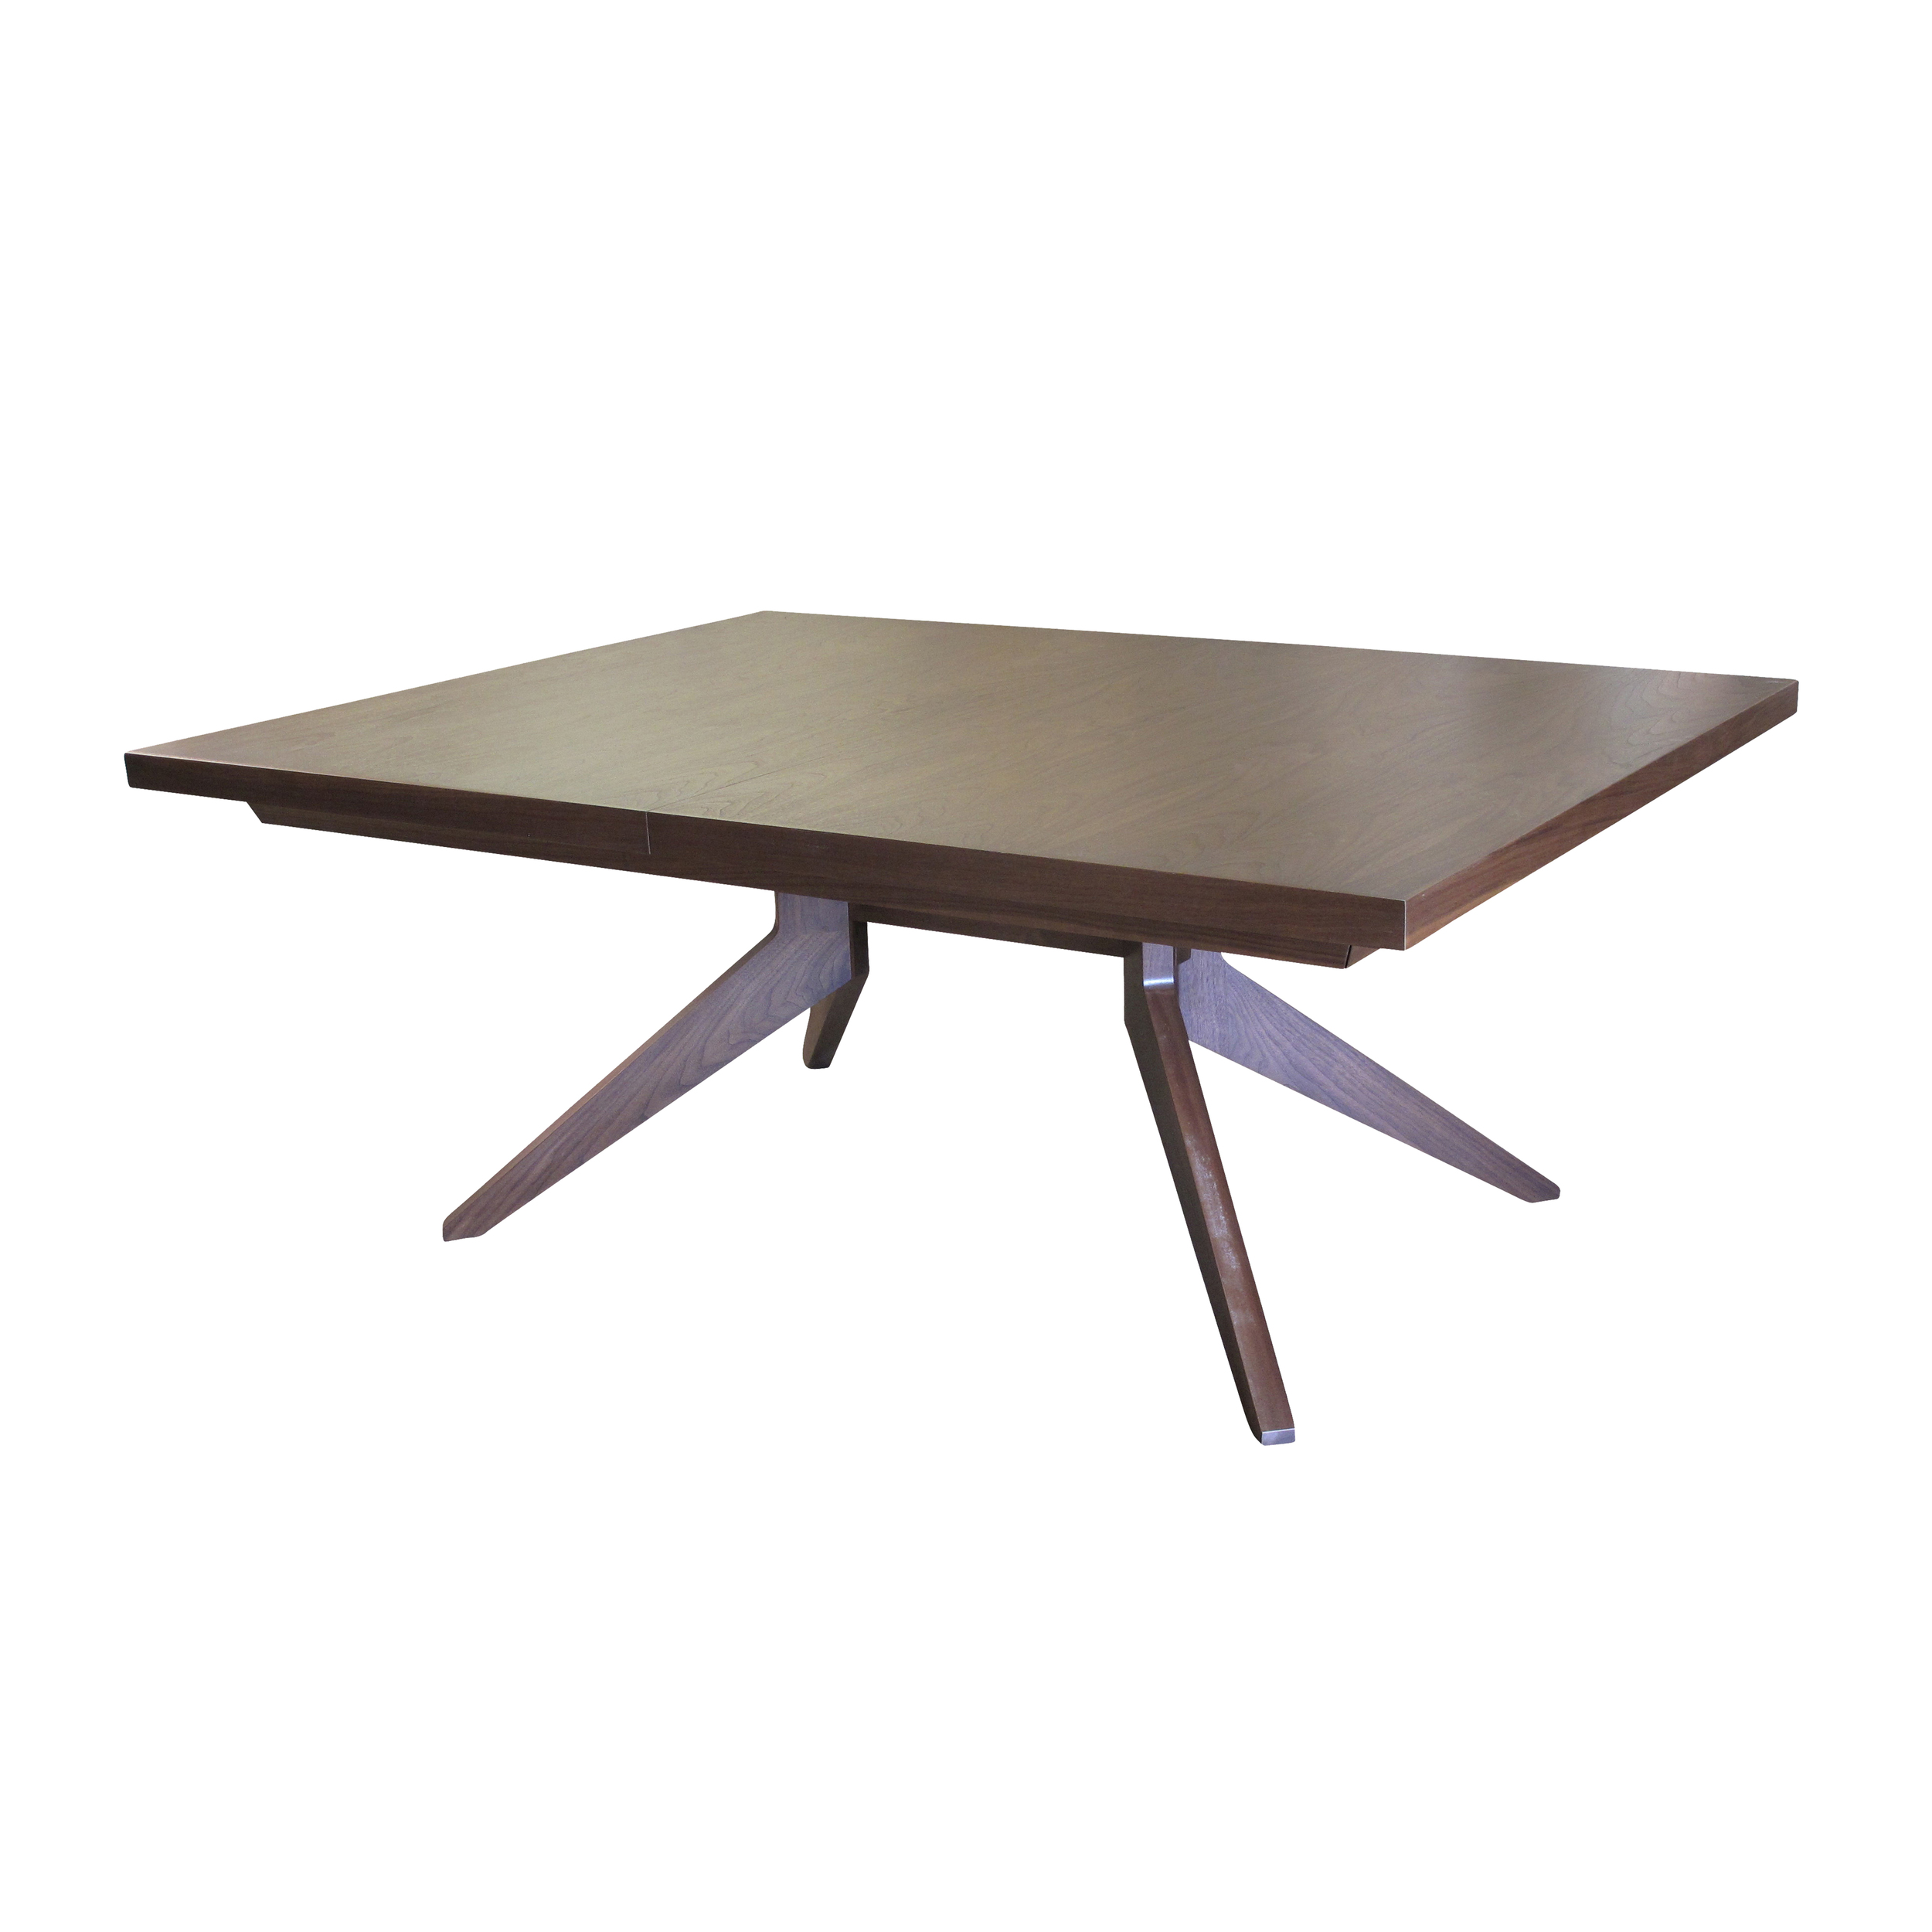 LARGE TABLES — Seventh & 7th Designs